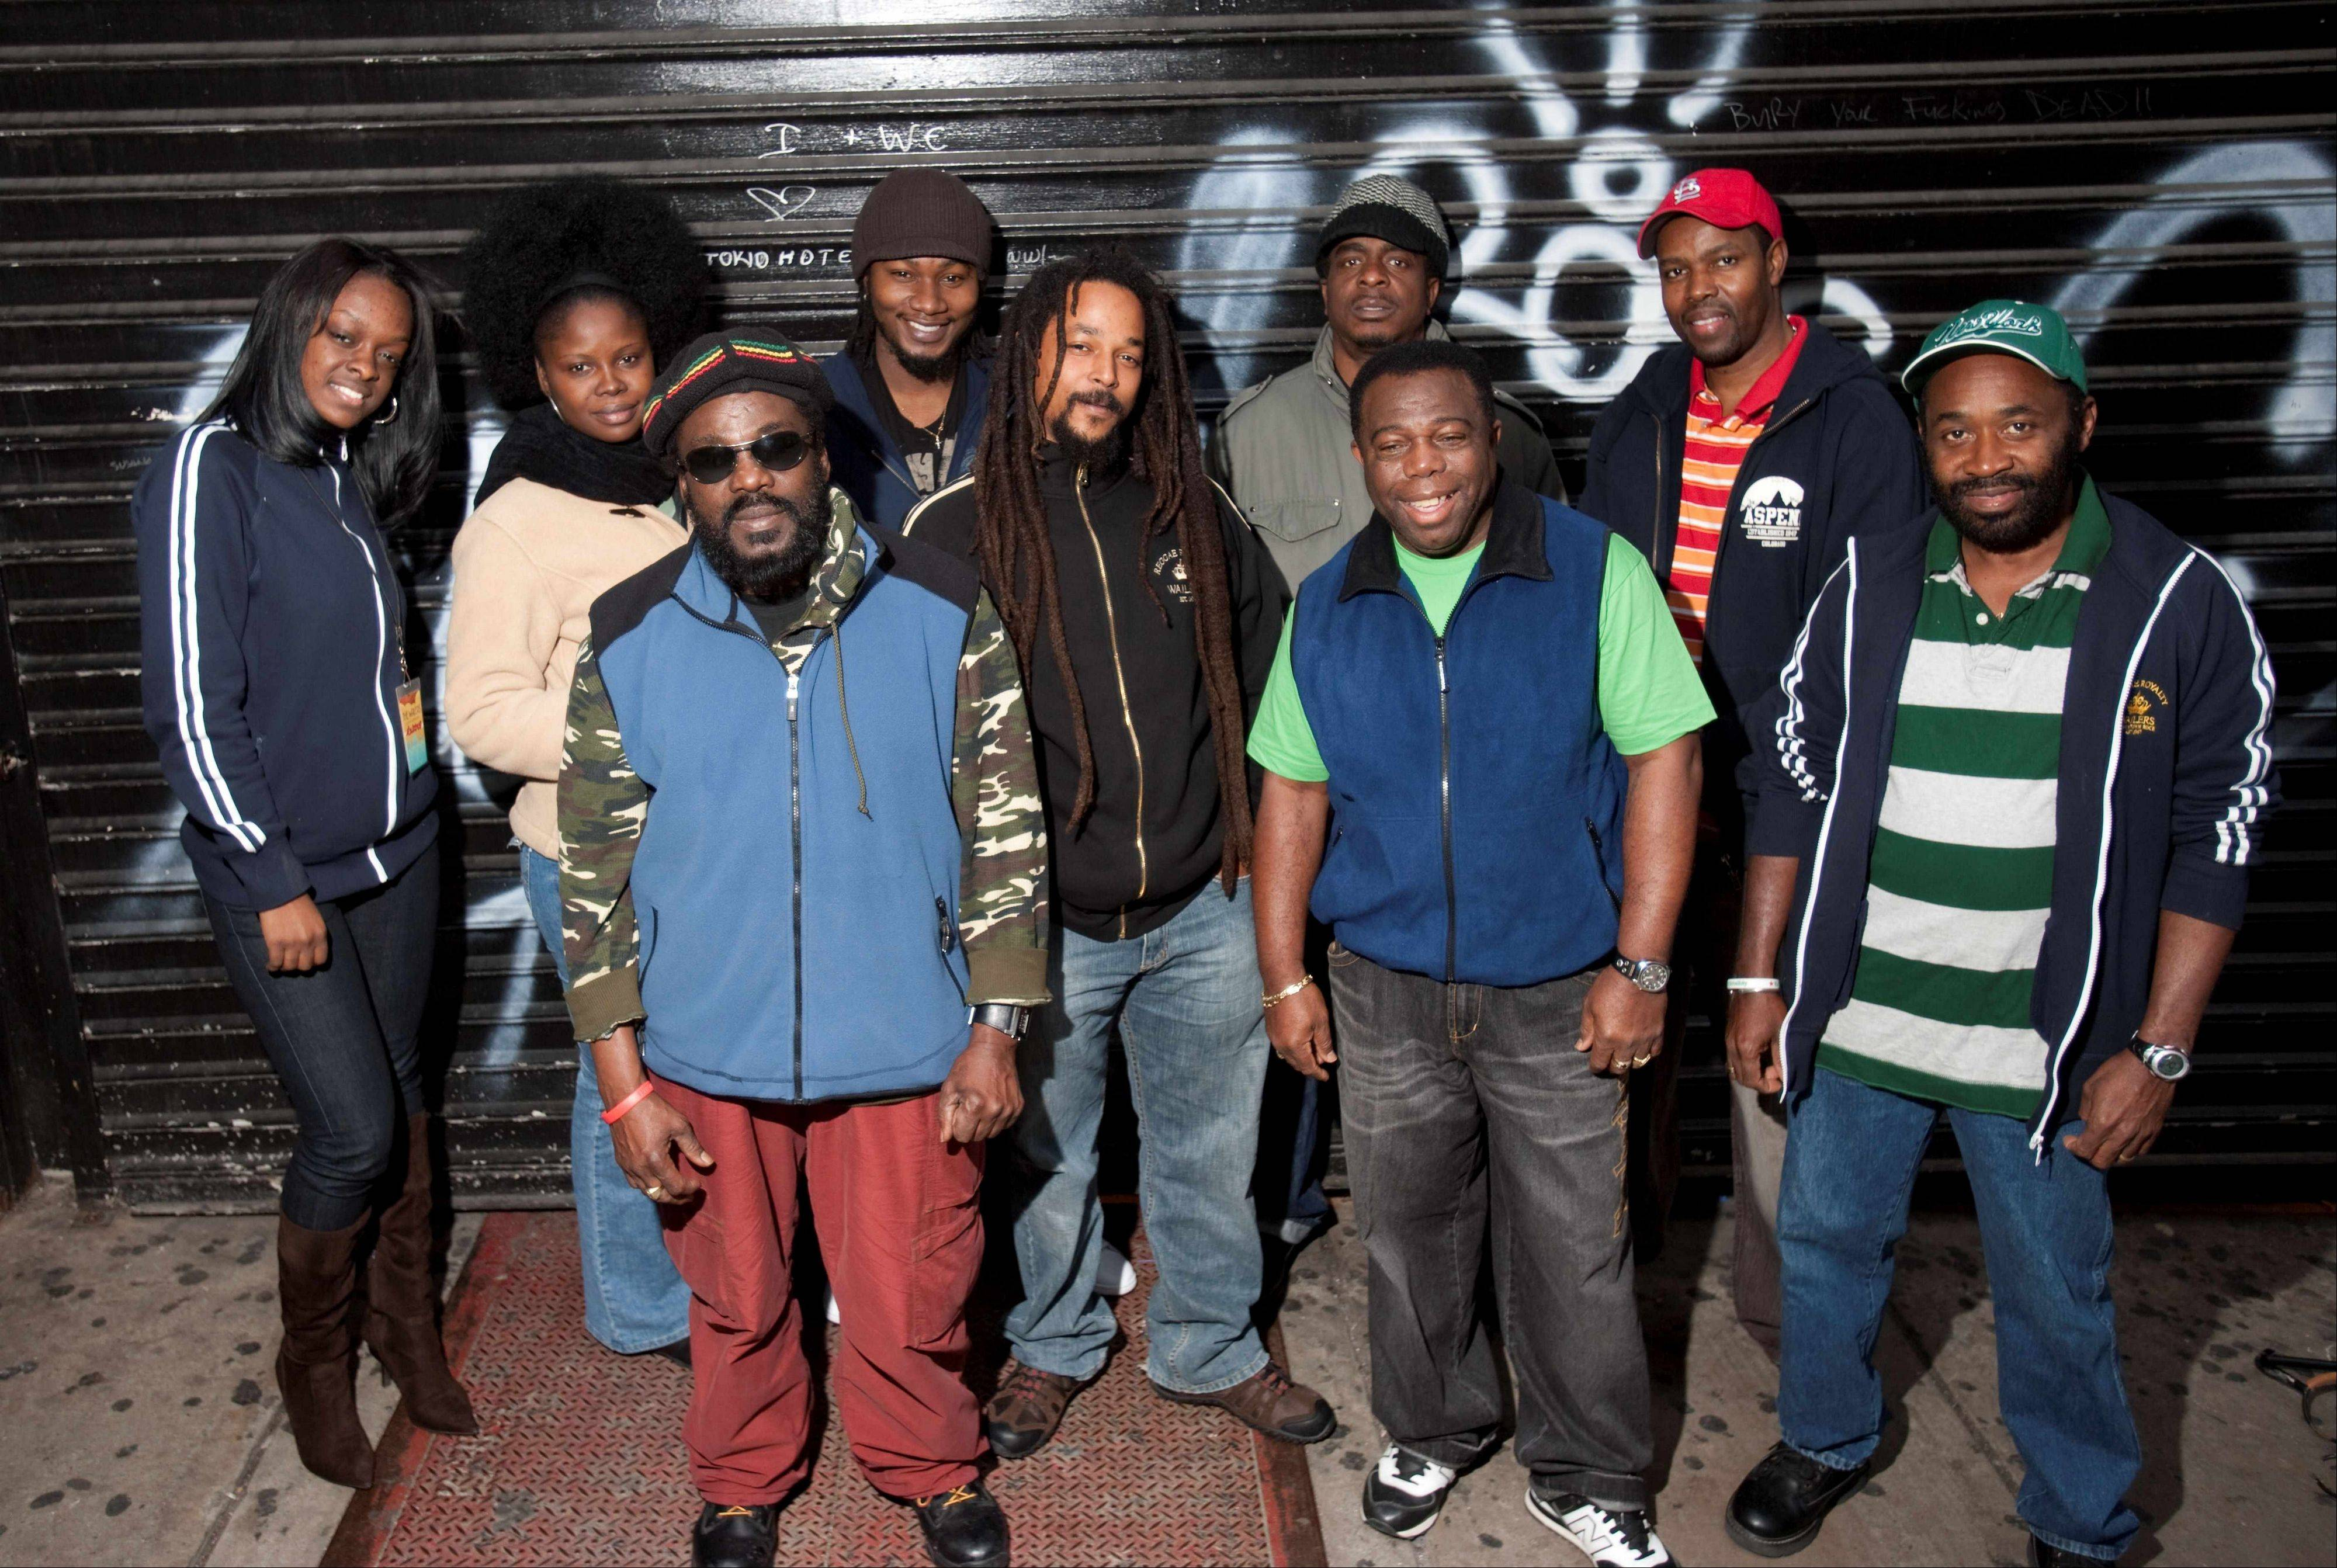 The Wailers will play Viper Alley in Lincolnshire.